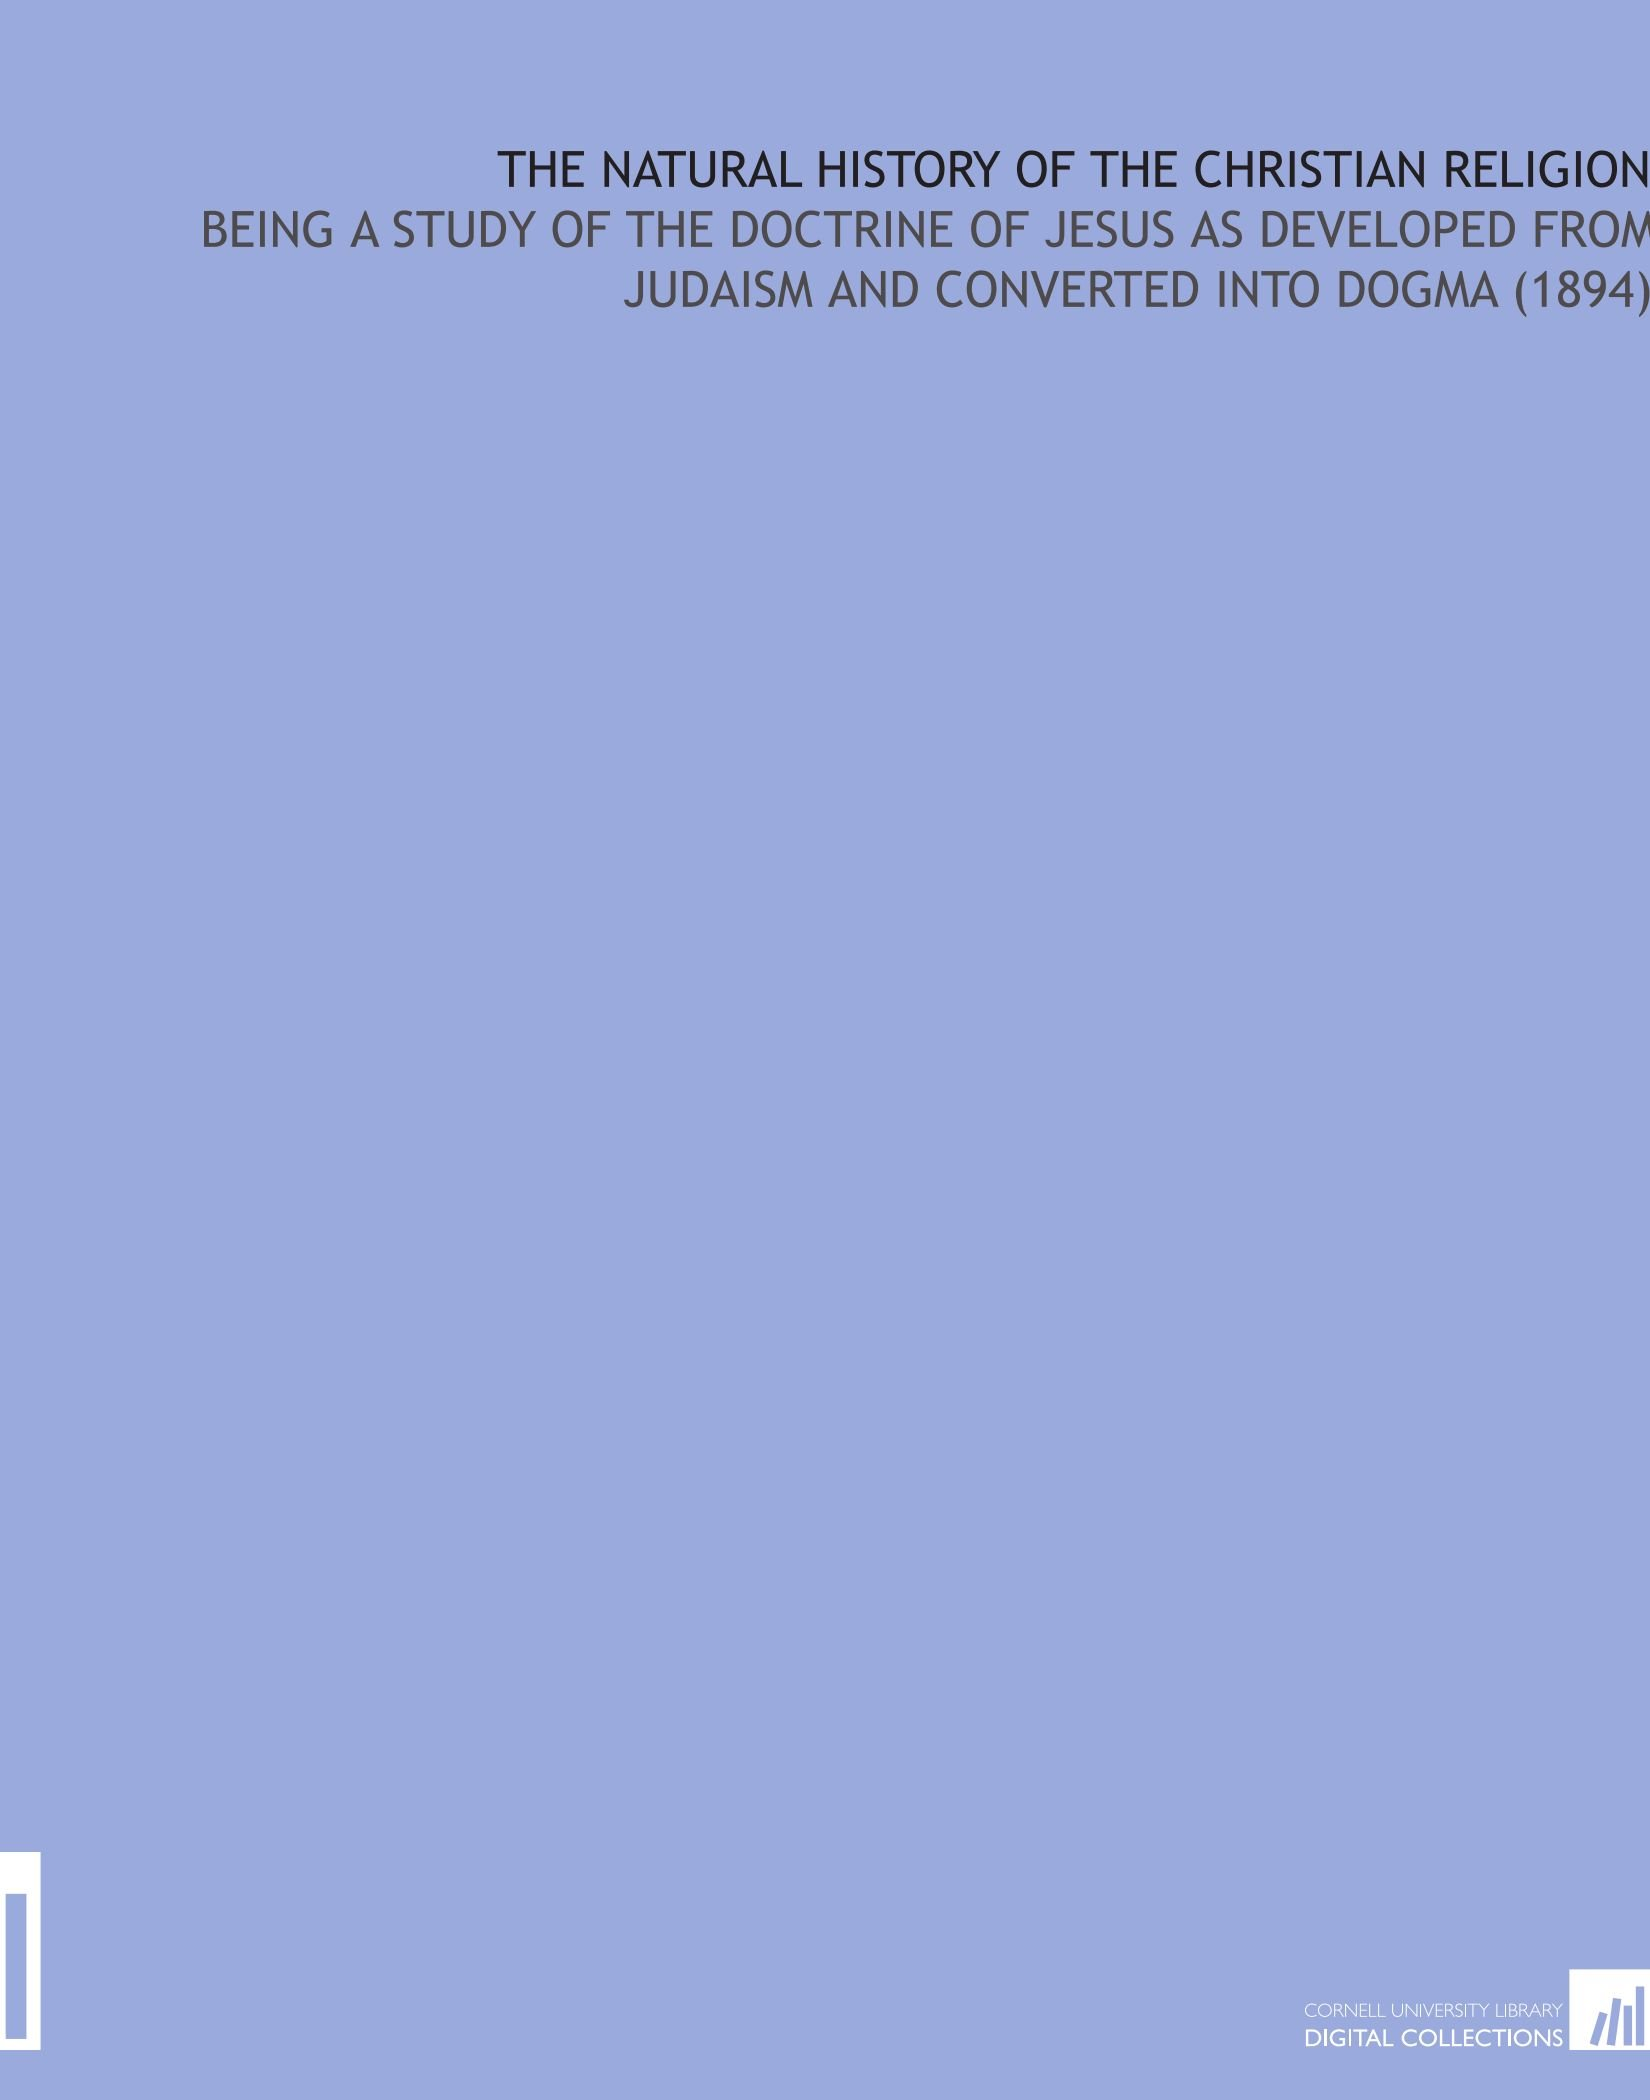 Download The Natural History of the Christian Religion: Being a Study of the Doctrine of Jesus as Developed From Judaism and Converted Into Dogma (1894) PDF